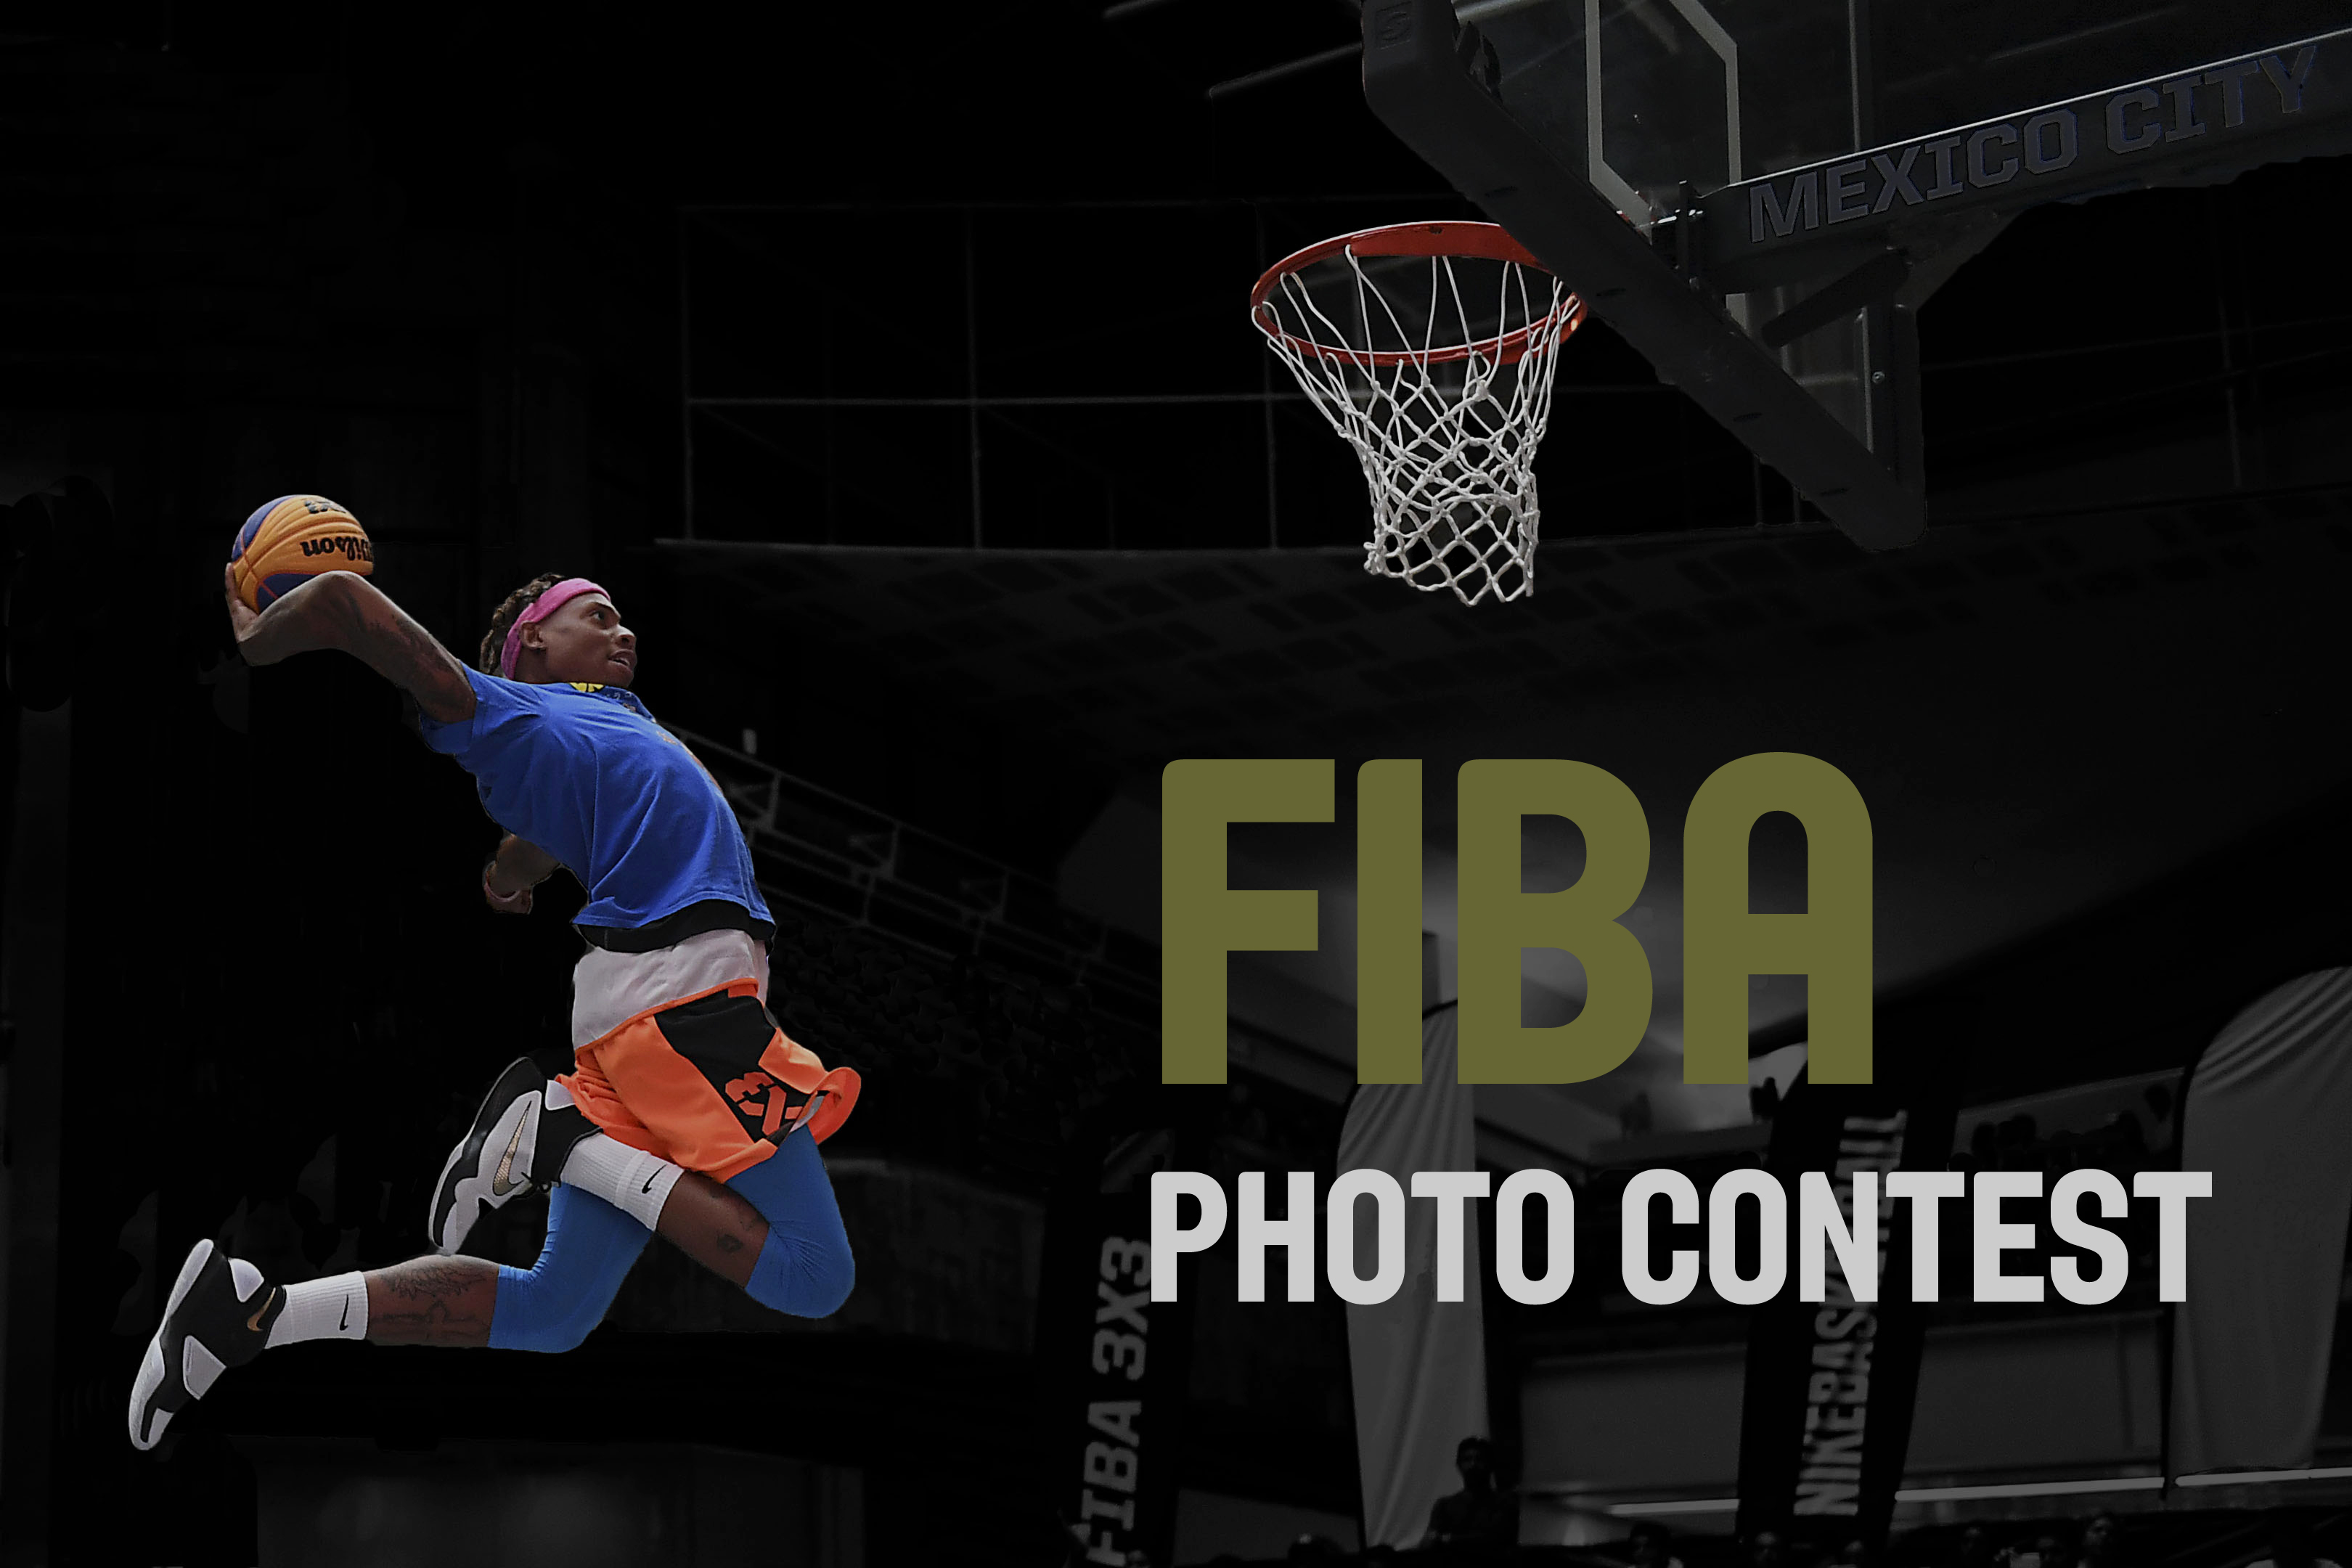 FIBA photo contest 2018 - logo